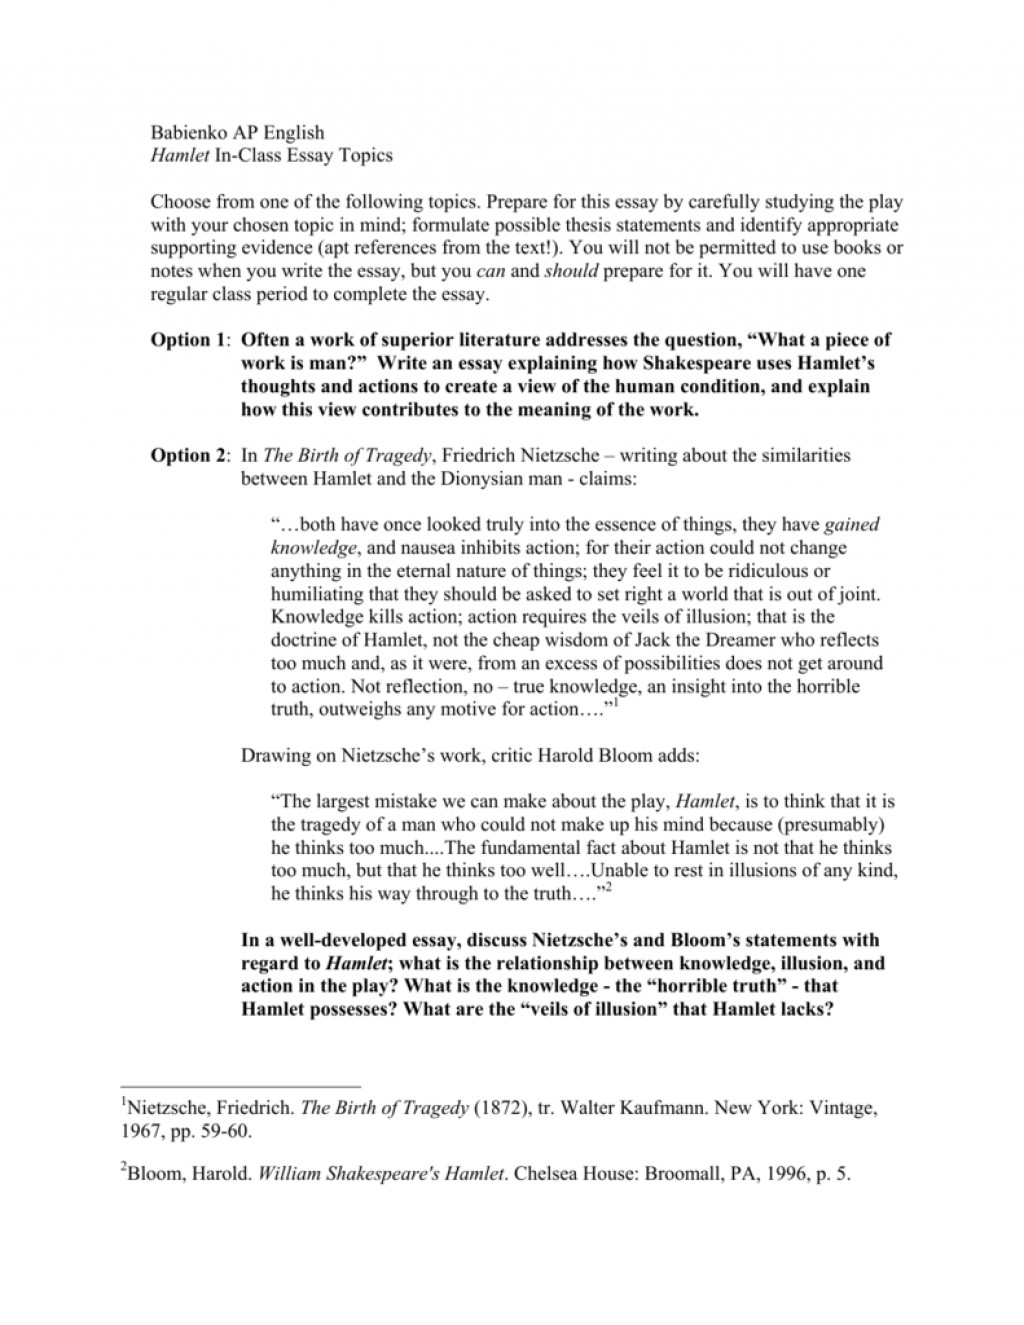 008 Essay Example 008676472 1 Topics Awful Hamlet High School Revenge Argumentative Large